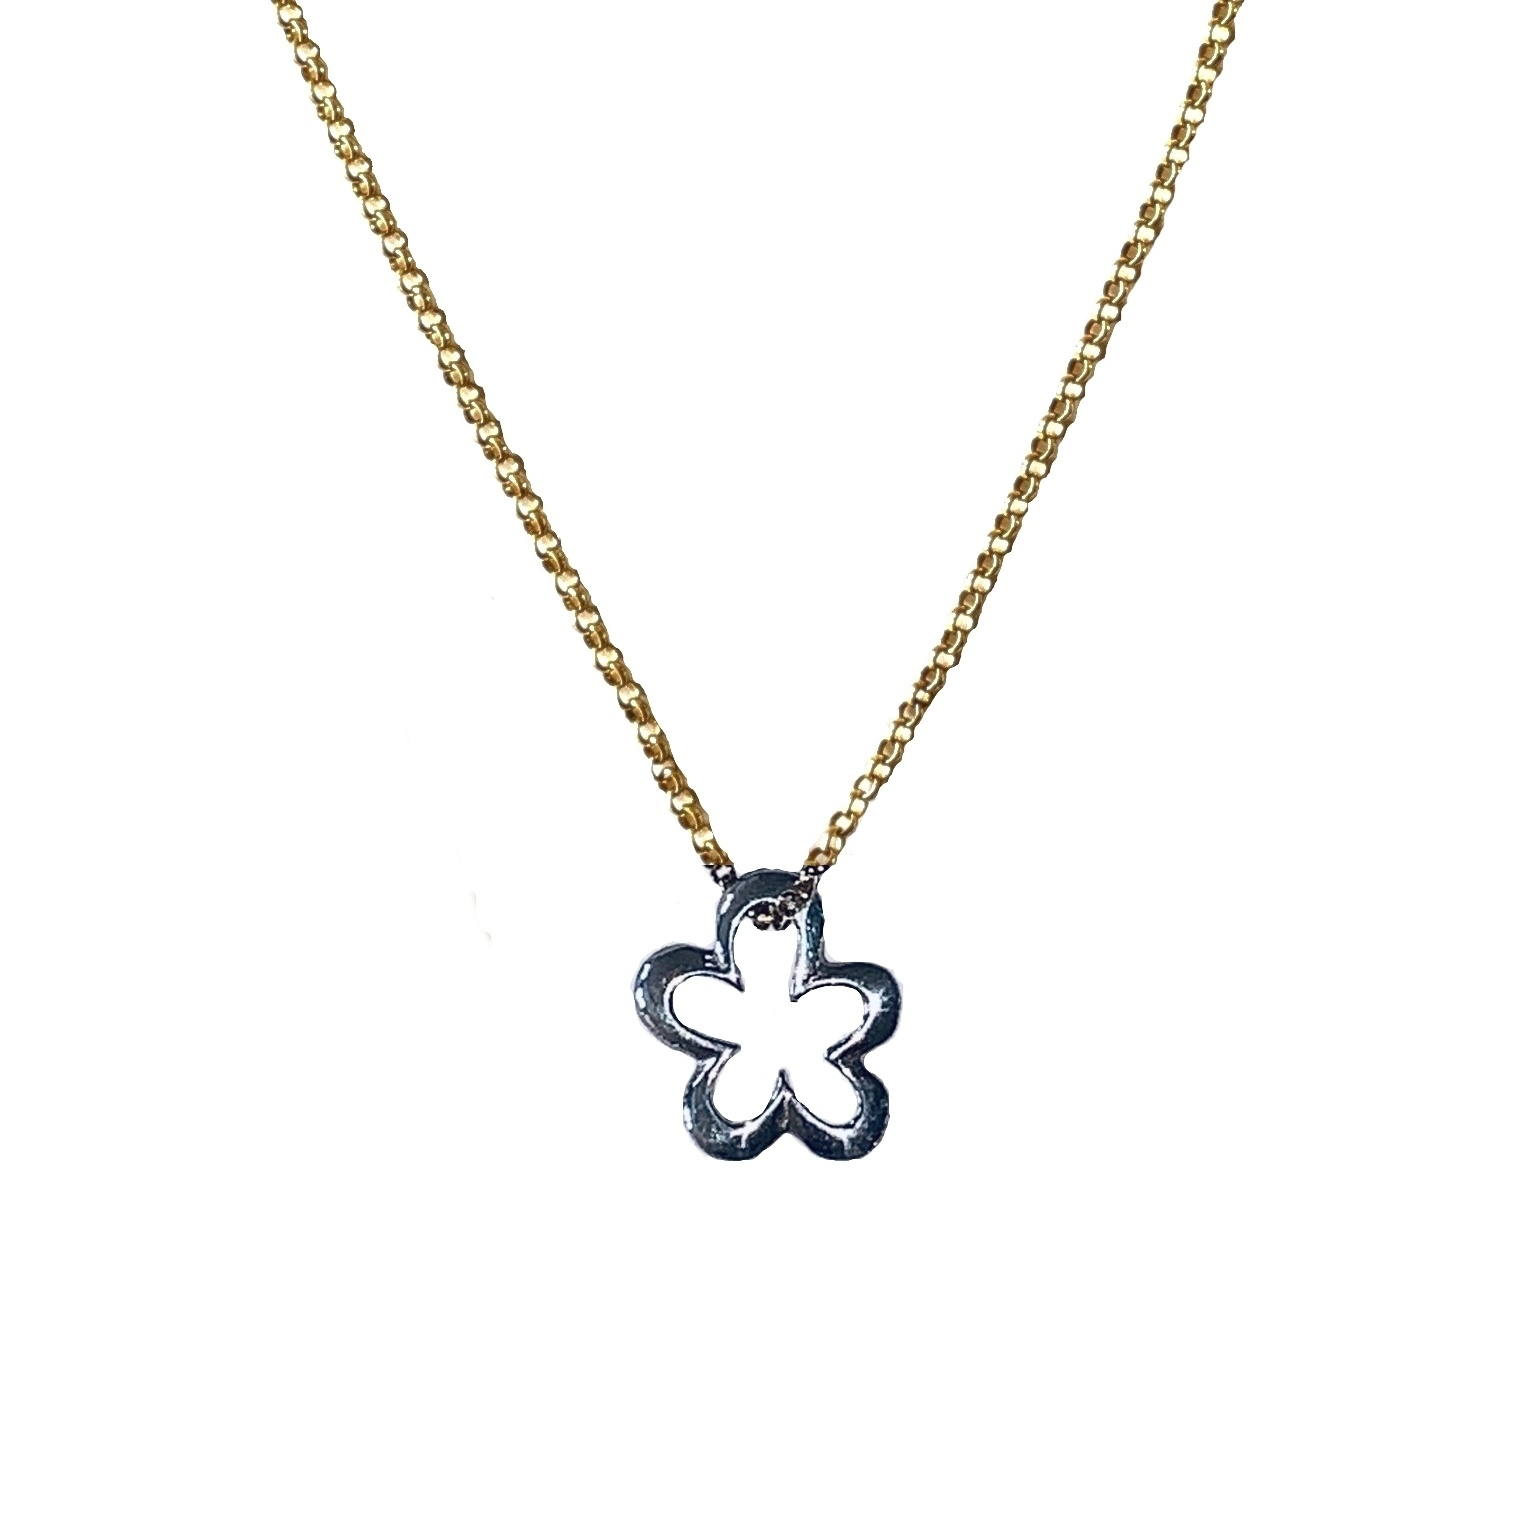 Cadeau idee Necklace Flower sterling silver and gold